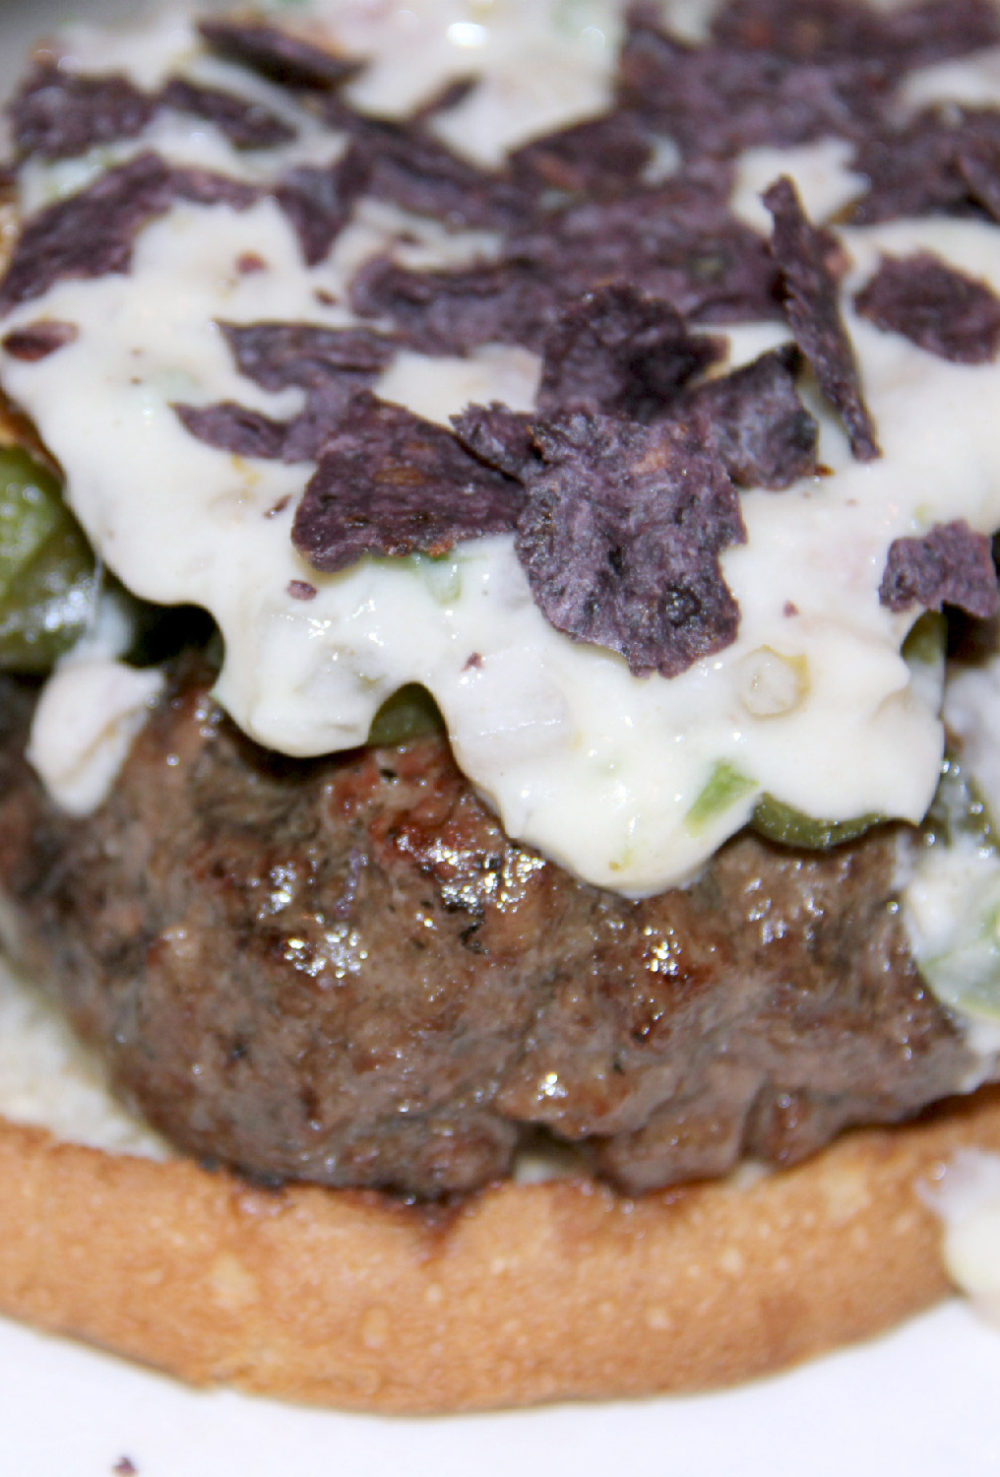 Juicy burger topped with roasted poblano peppers, fried green tomato, melted cheese, and blue corn chips--amazing and delicious!